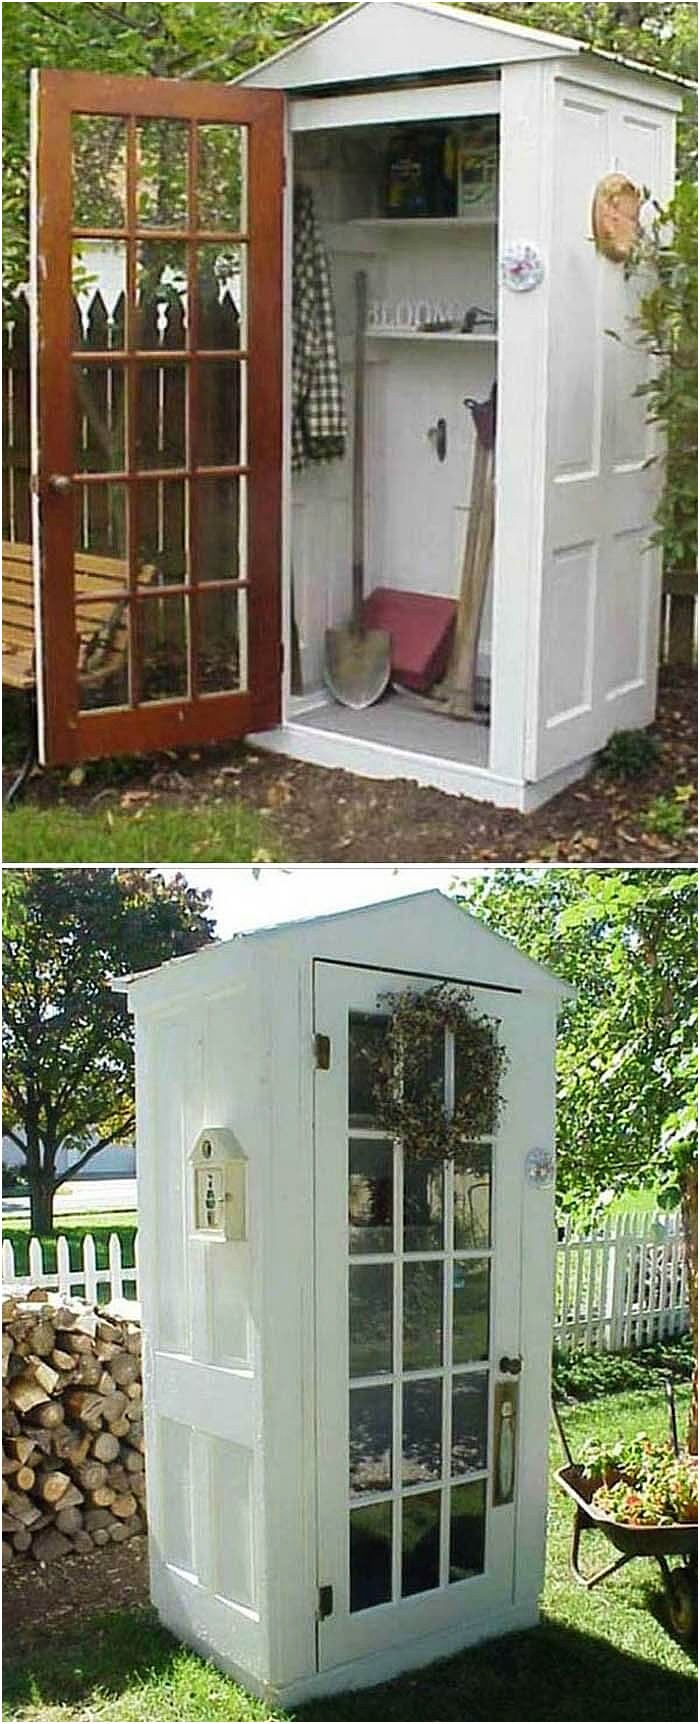 25.SIMPHOME.COM small storage shed projects ideas